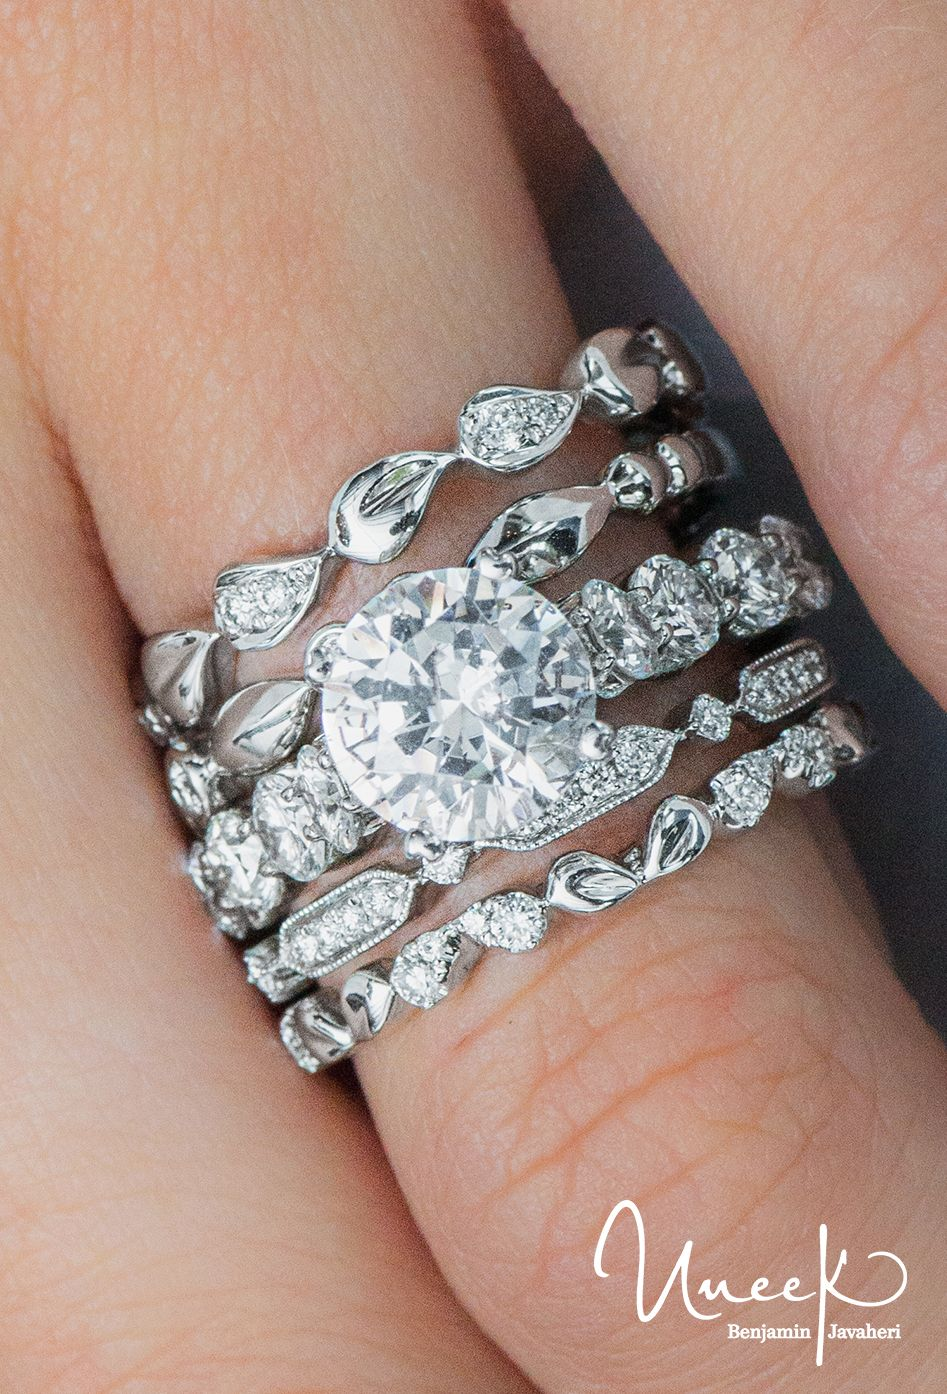 a20cf9d32 Uneek Round Cut Solitaire Diamond #EngagementRing with